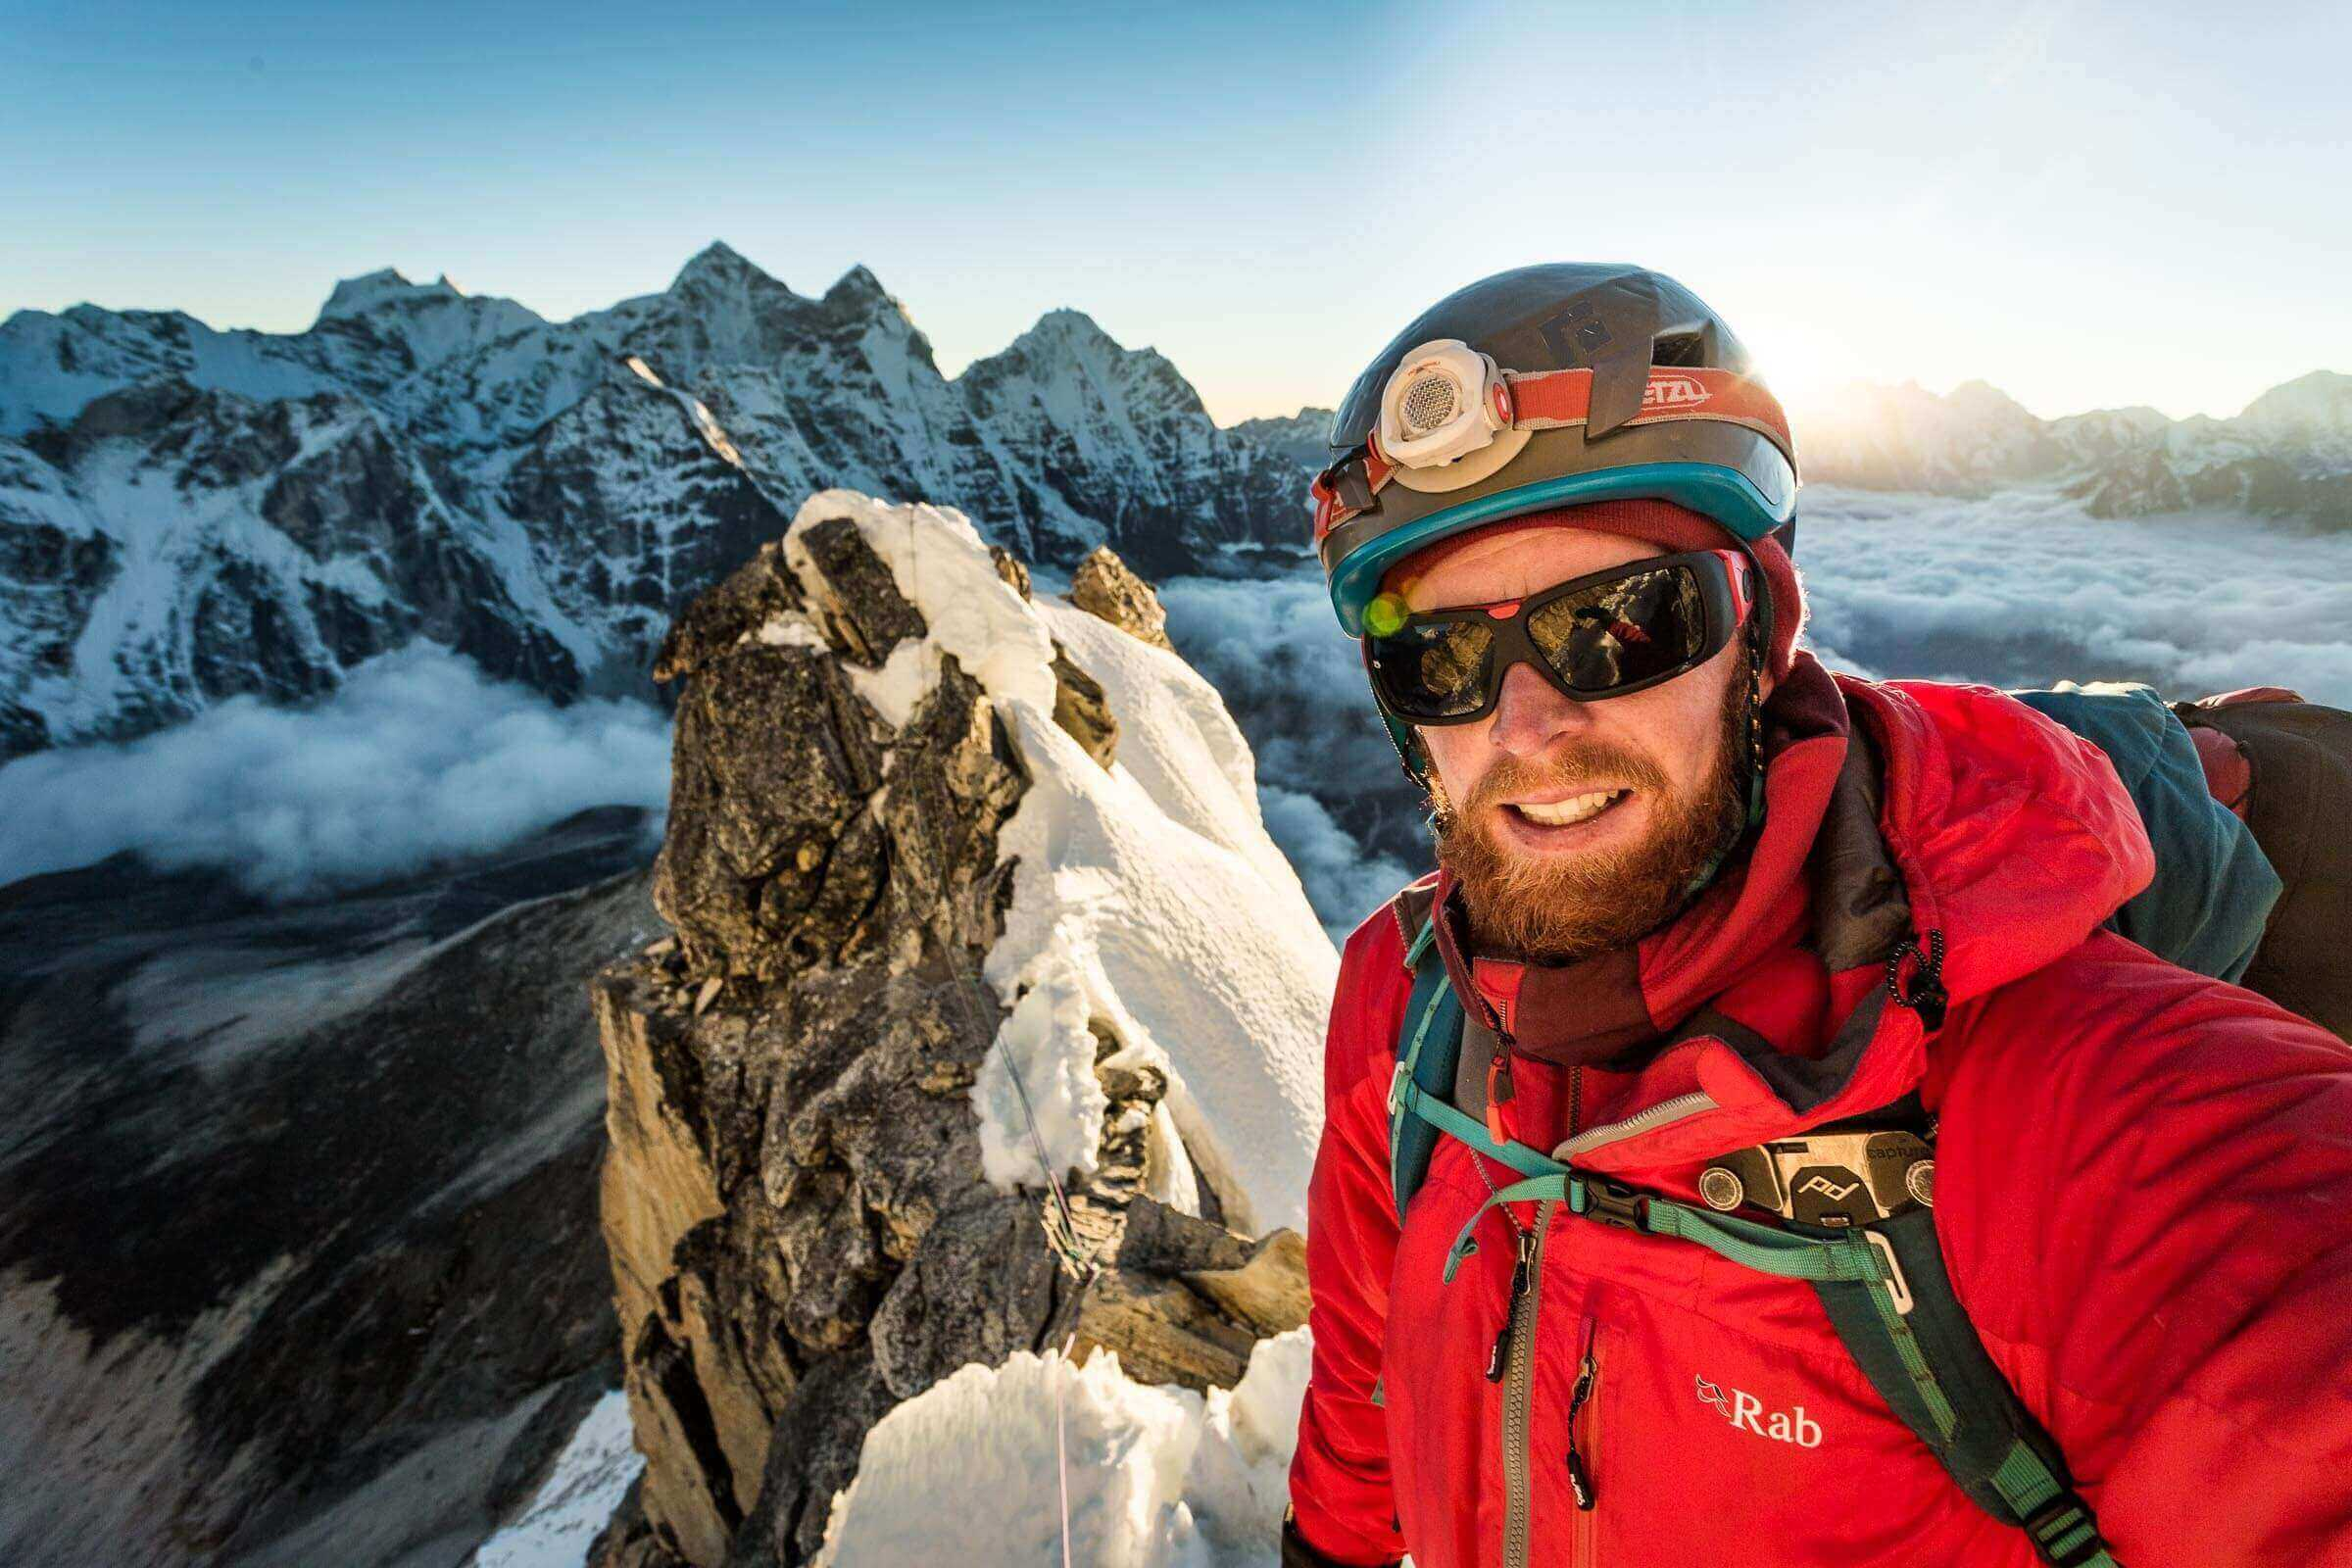 Self portrait at 6000m on the South-West Ridge of Ama Dablam (6812m) in Nepal